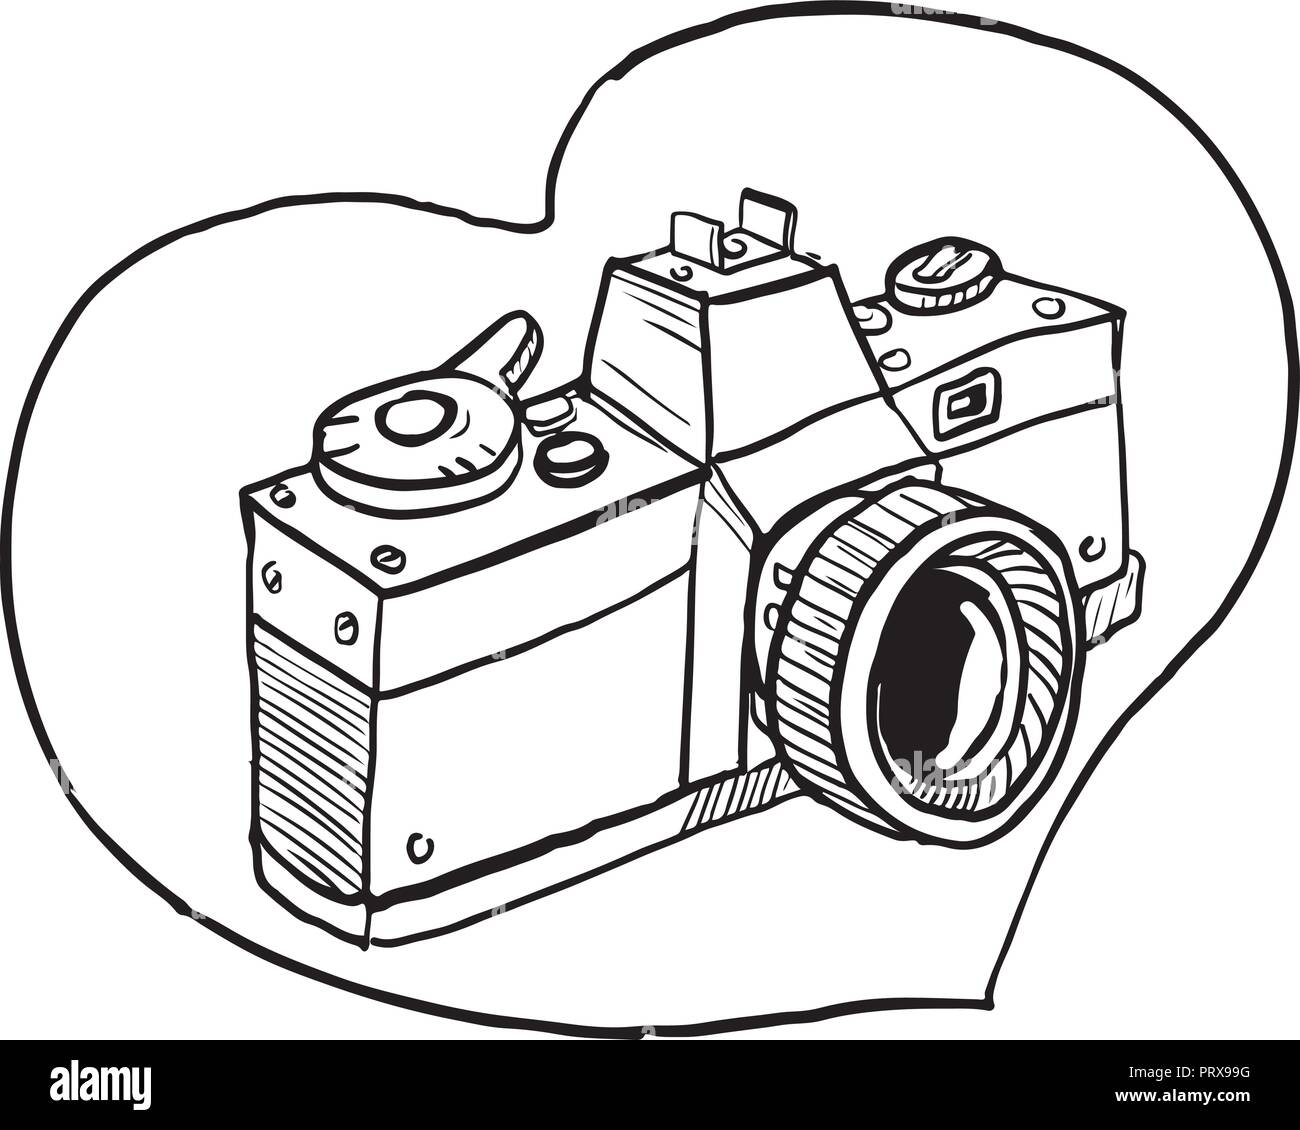 Drawing sketch style illustration of a vintage 35mm slr camera set inside heart shape on isolated background. - Stock Vector